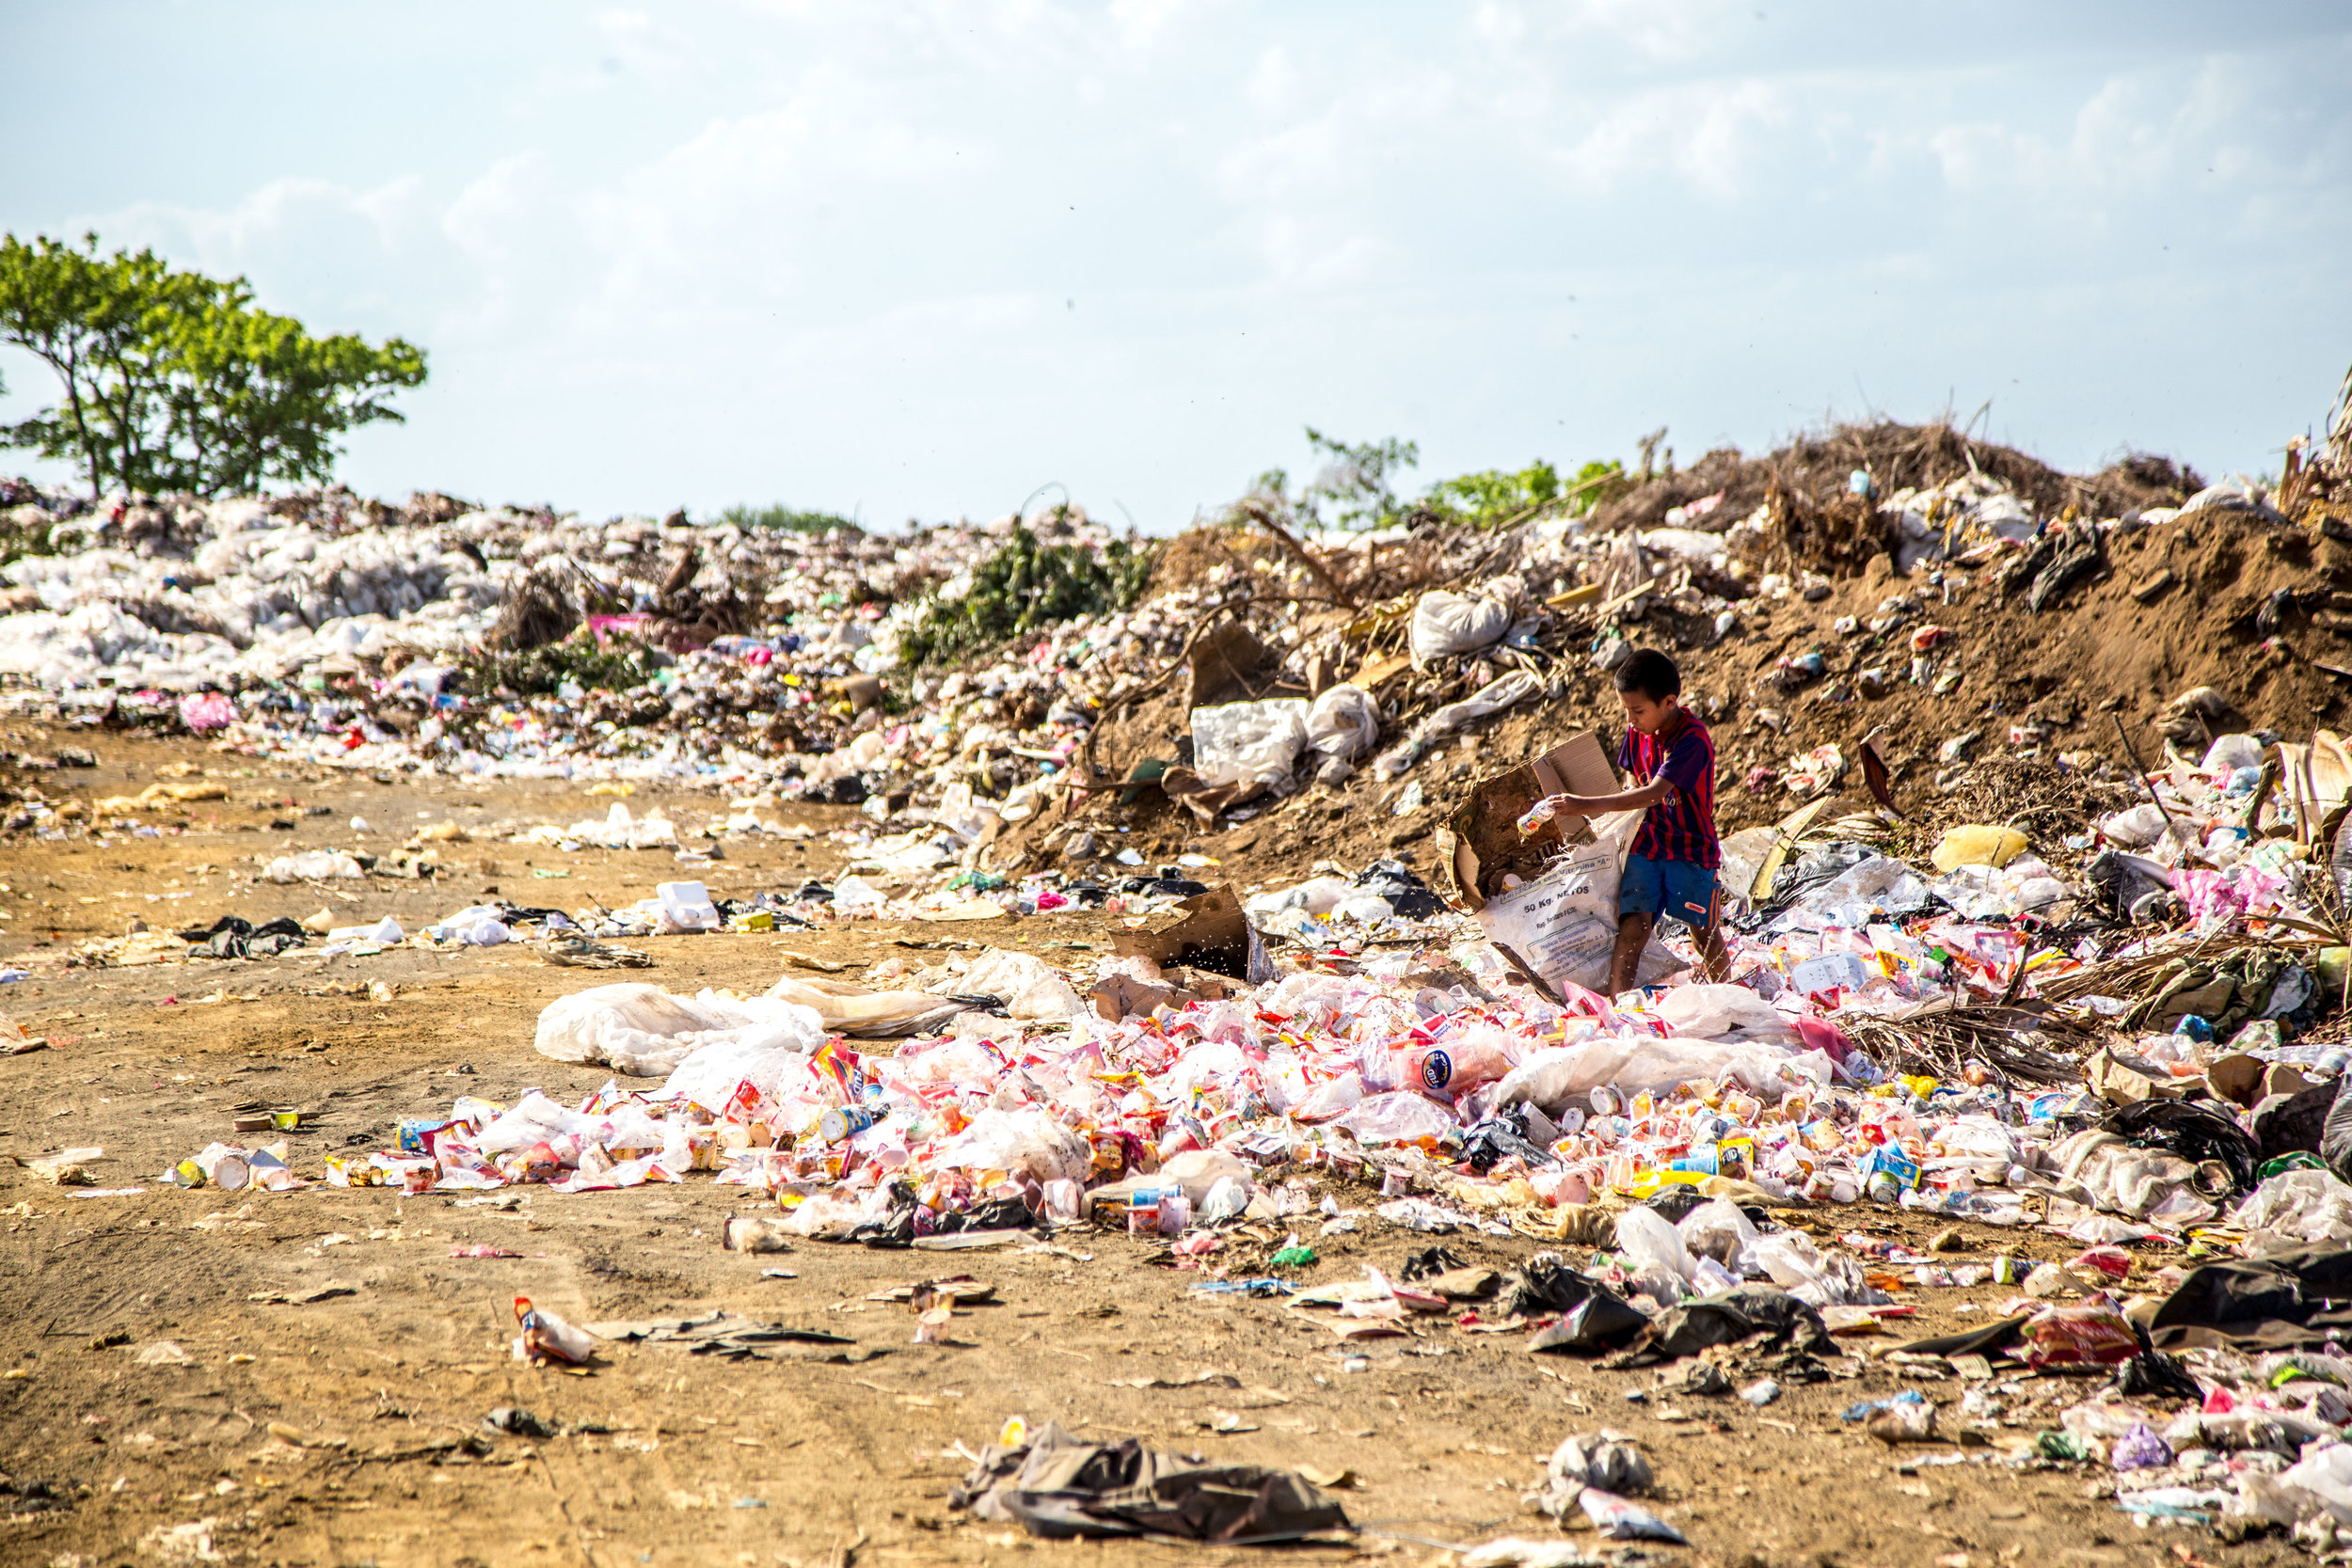 Landfills are the third largest producer of methane gas around the world, due to the microorganisms that inhabit them and decompose the waste, generating methane. Photo credit: Hermes Rivera